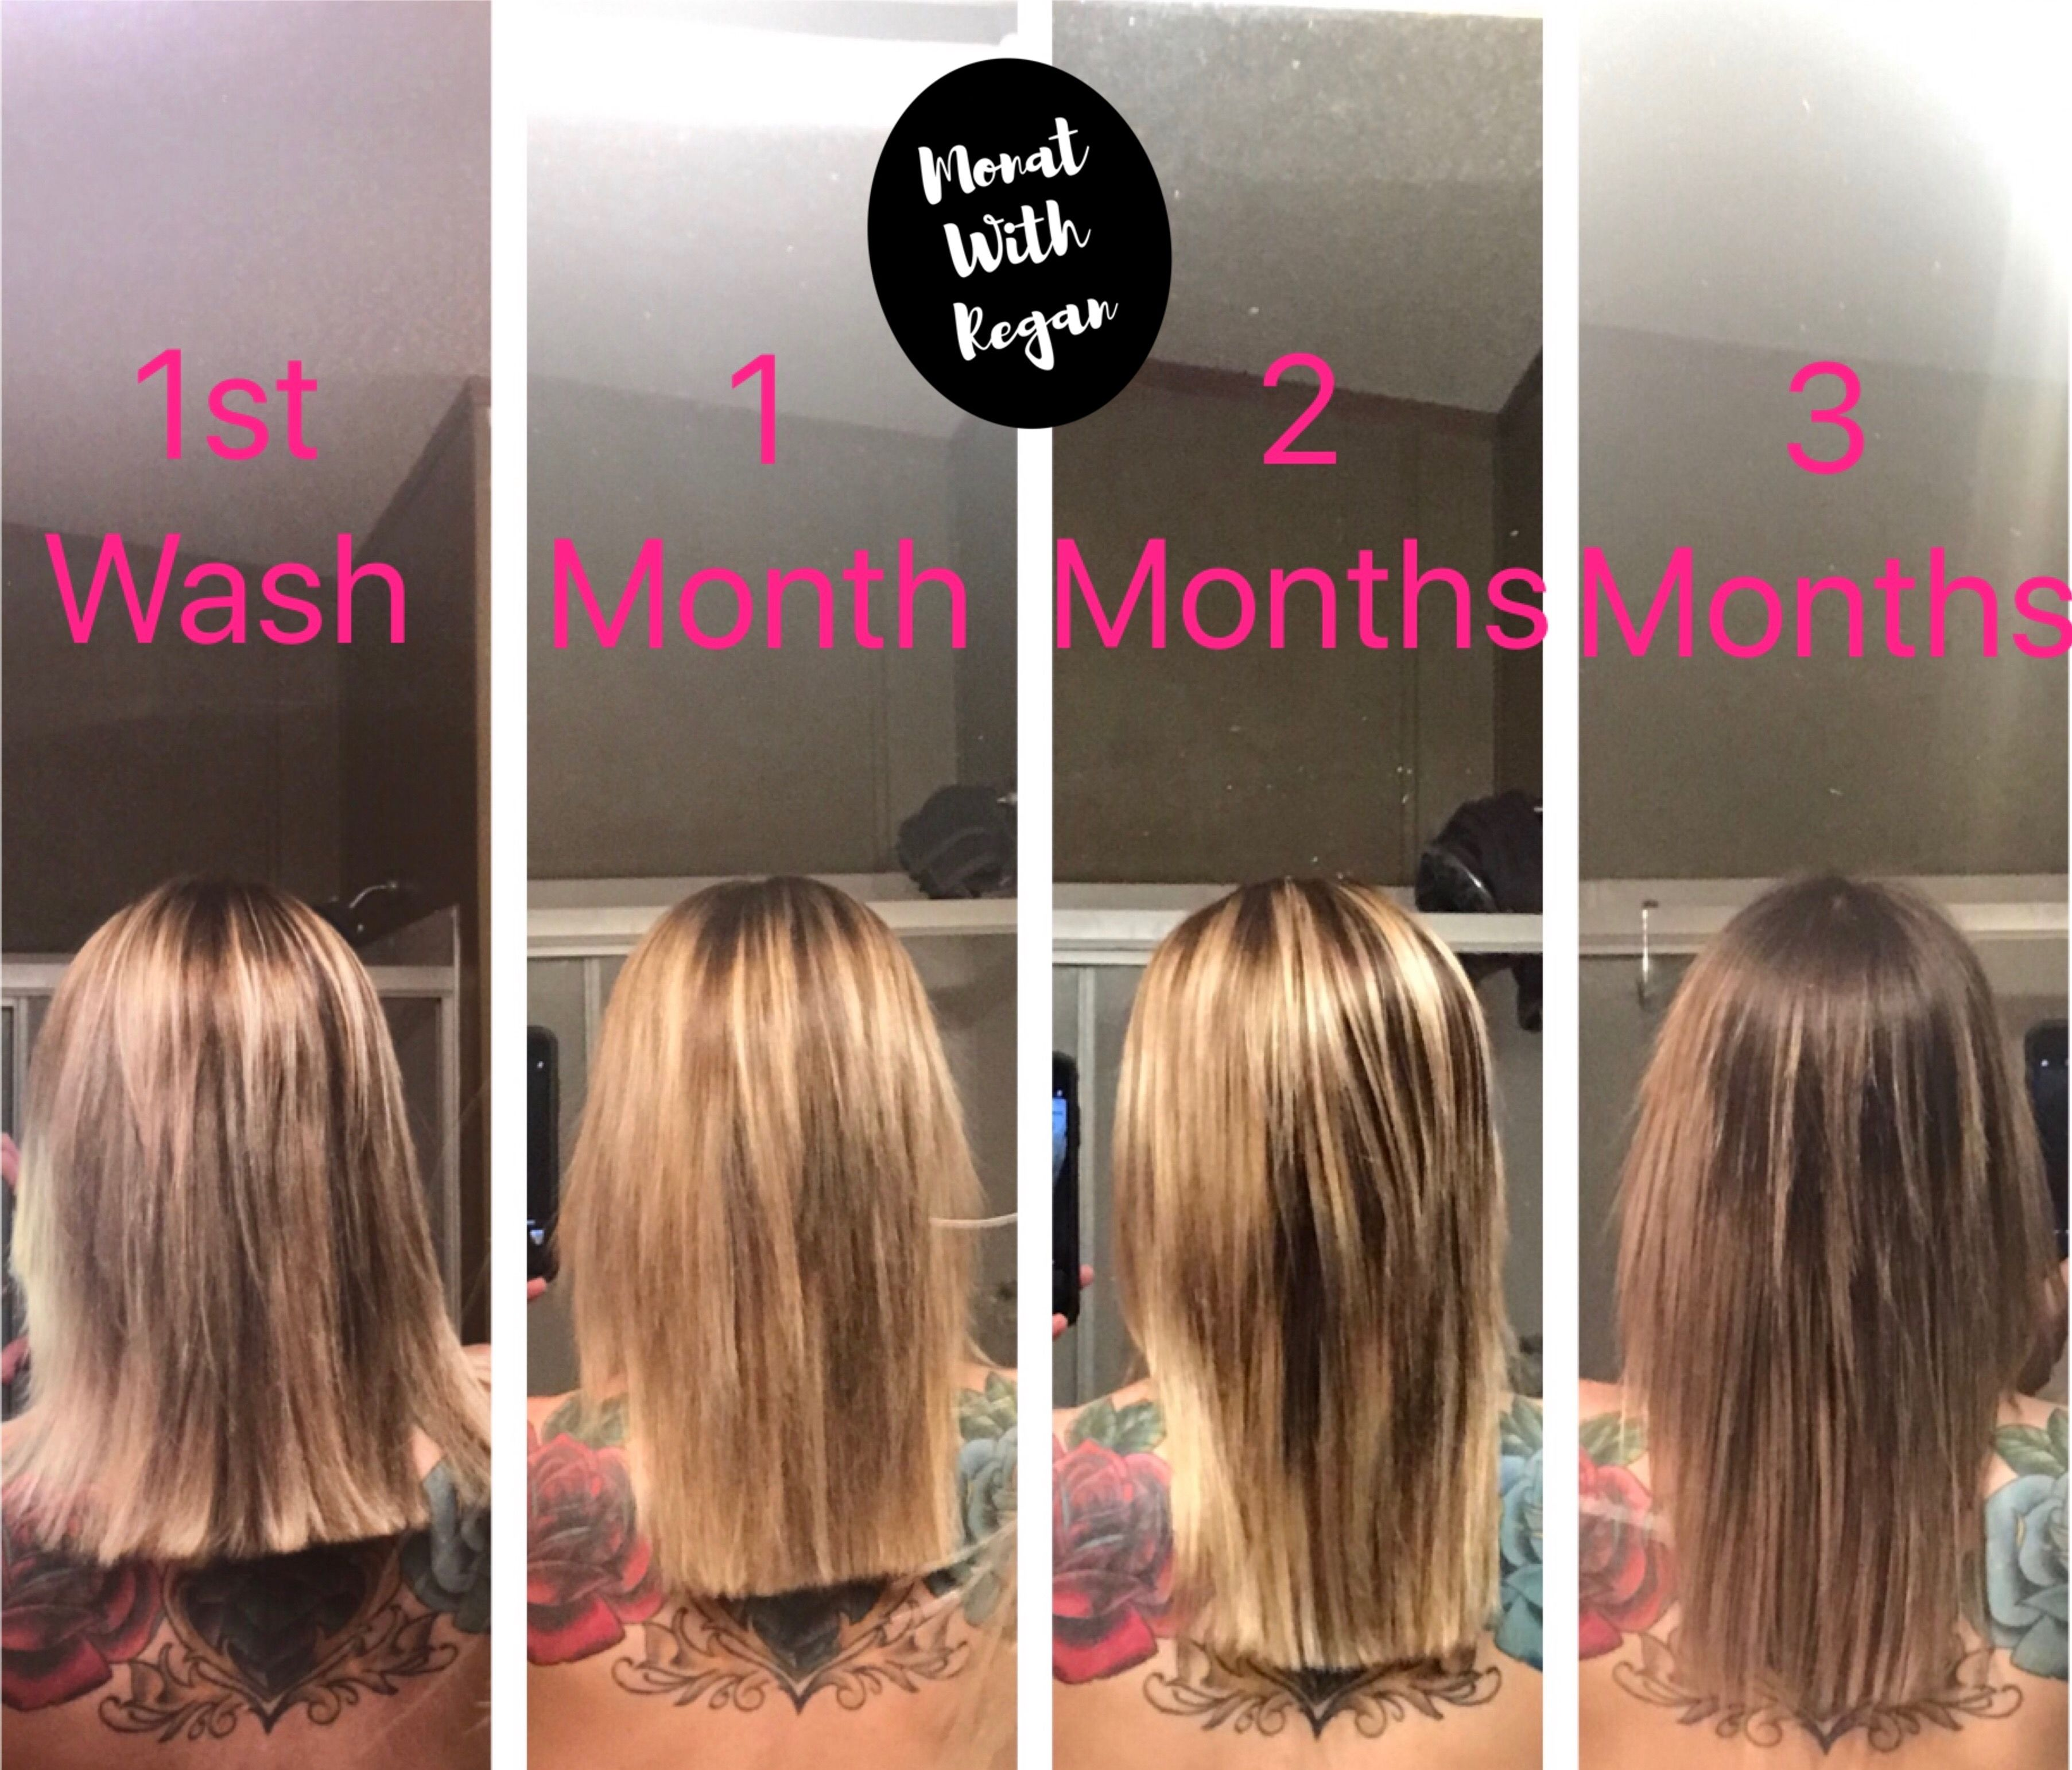 Thyroid Problems Monat Saved My Hair Before And After Contact Me For My Testimony And Products That I Used Slow Hair Growth Monat Hair Hair Growth